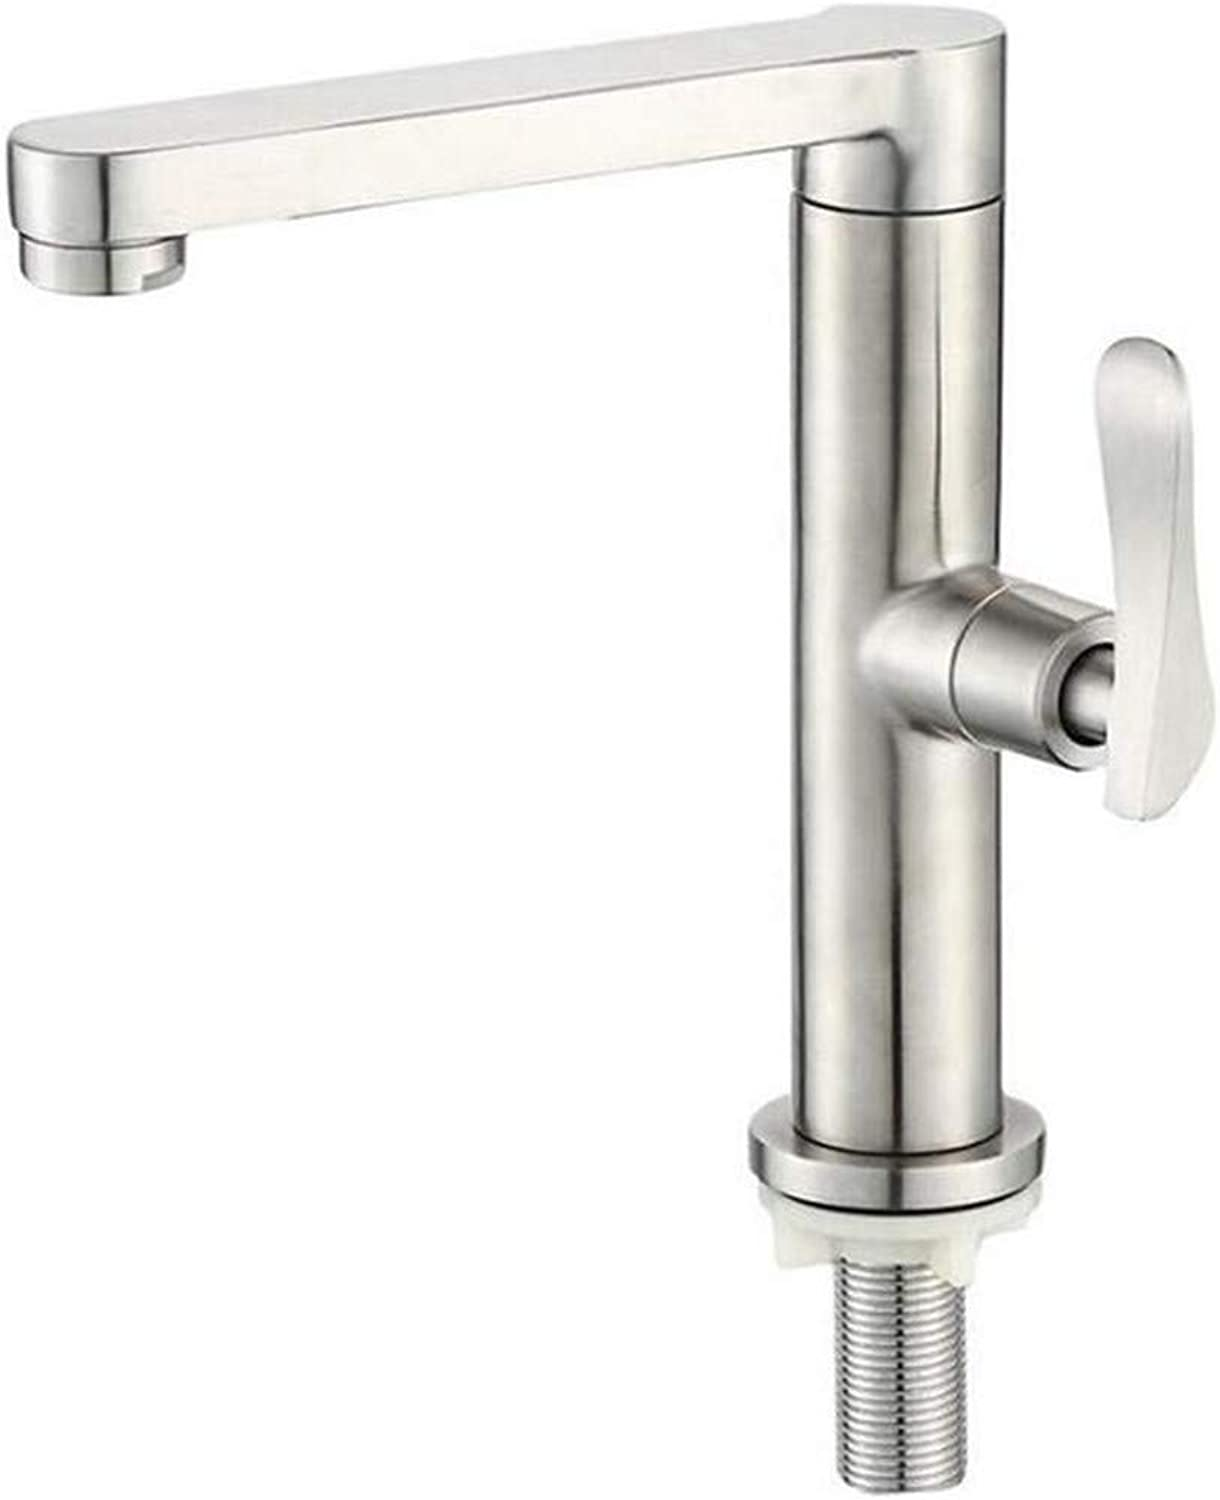 Kitchen Bath Basin Sink Bathroom Taps Taps Mixer Faucet Sink 304 Stainless Steel Sink Faucet Ctzl0472